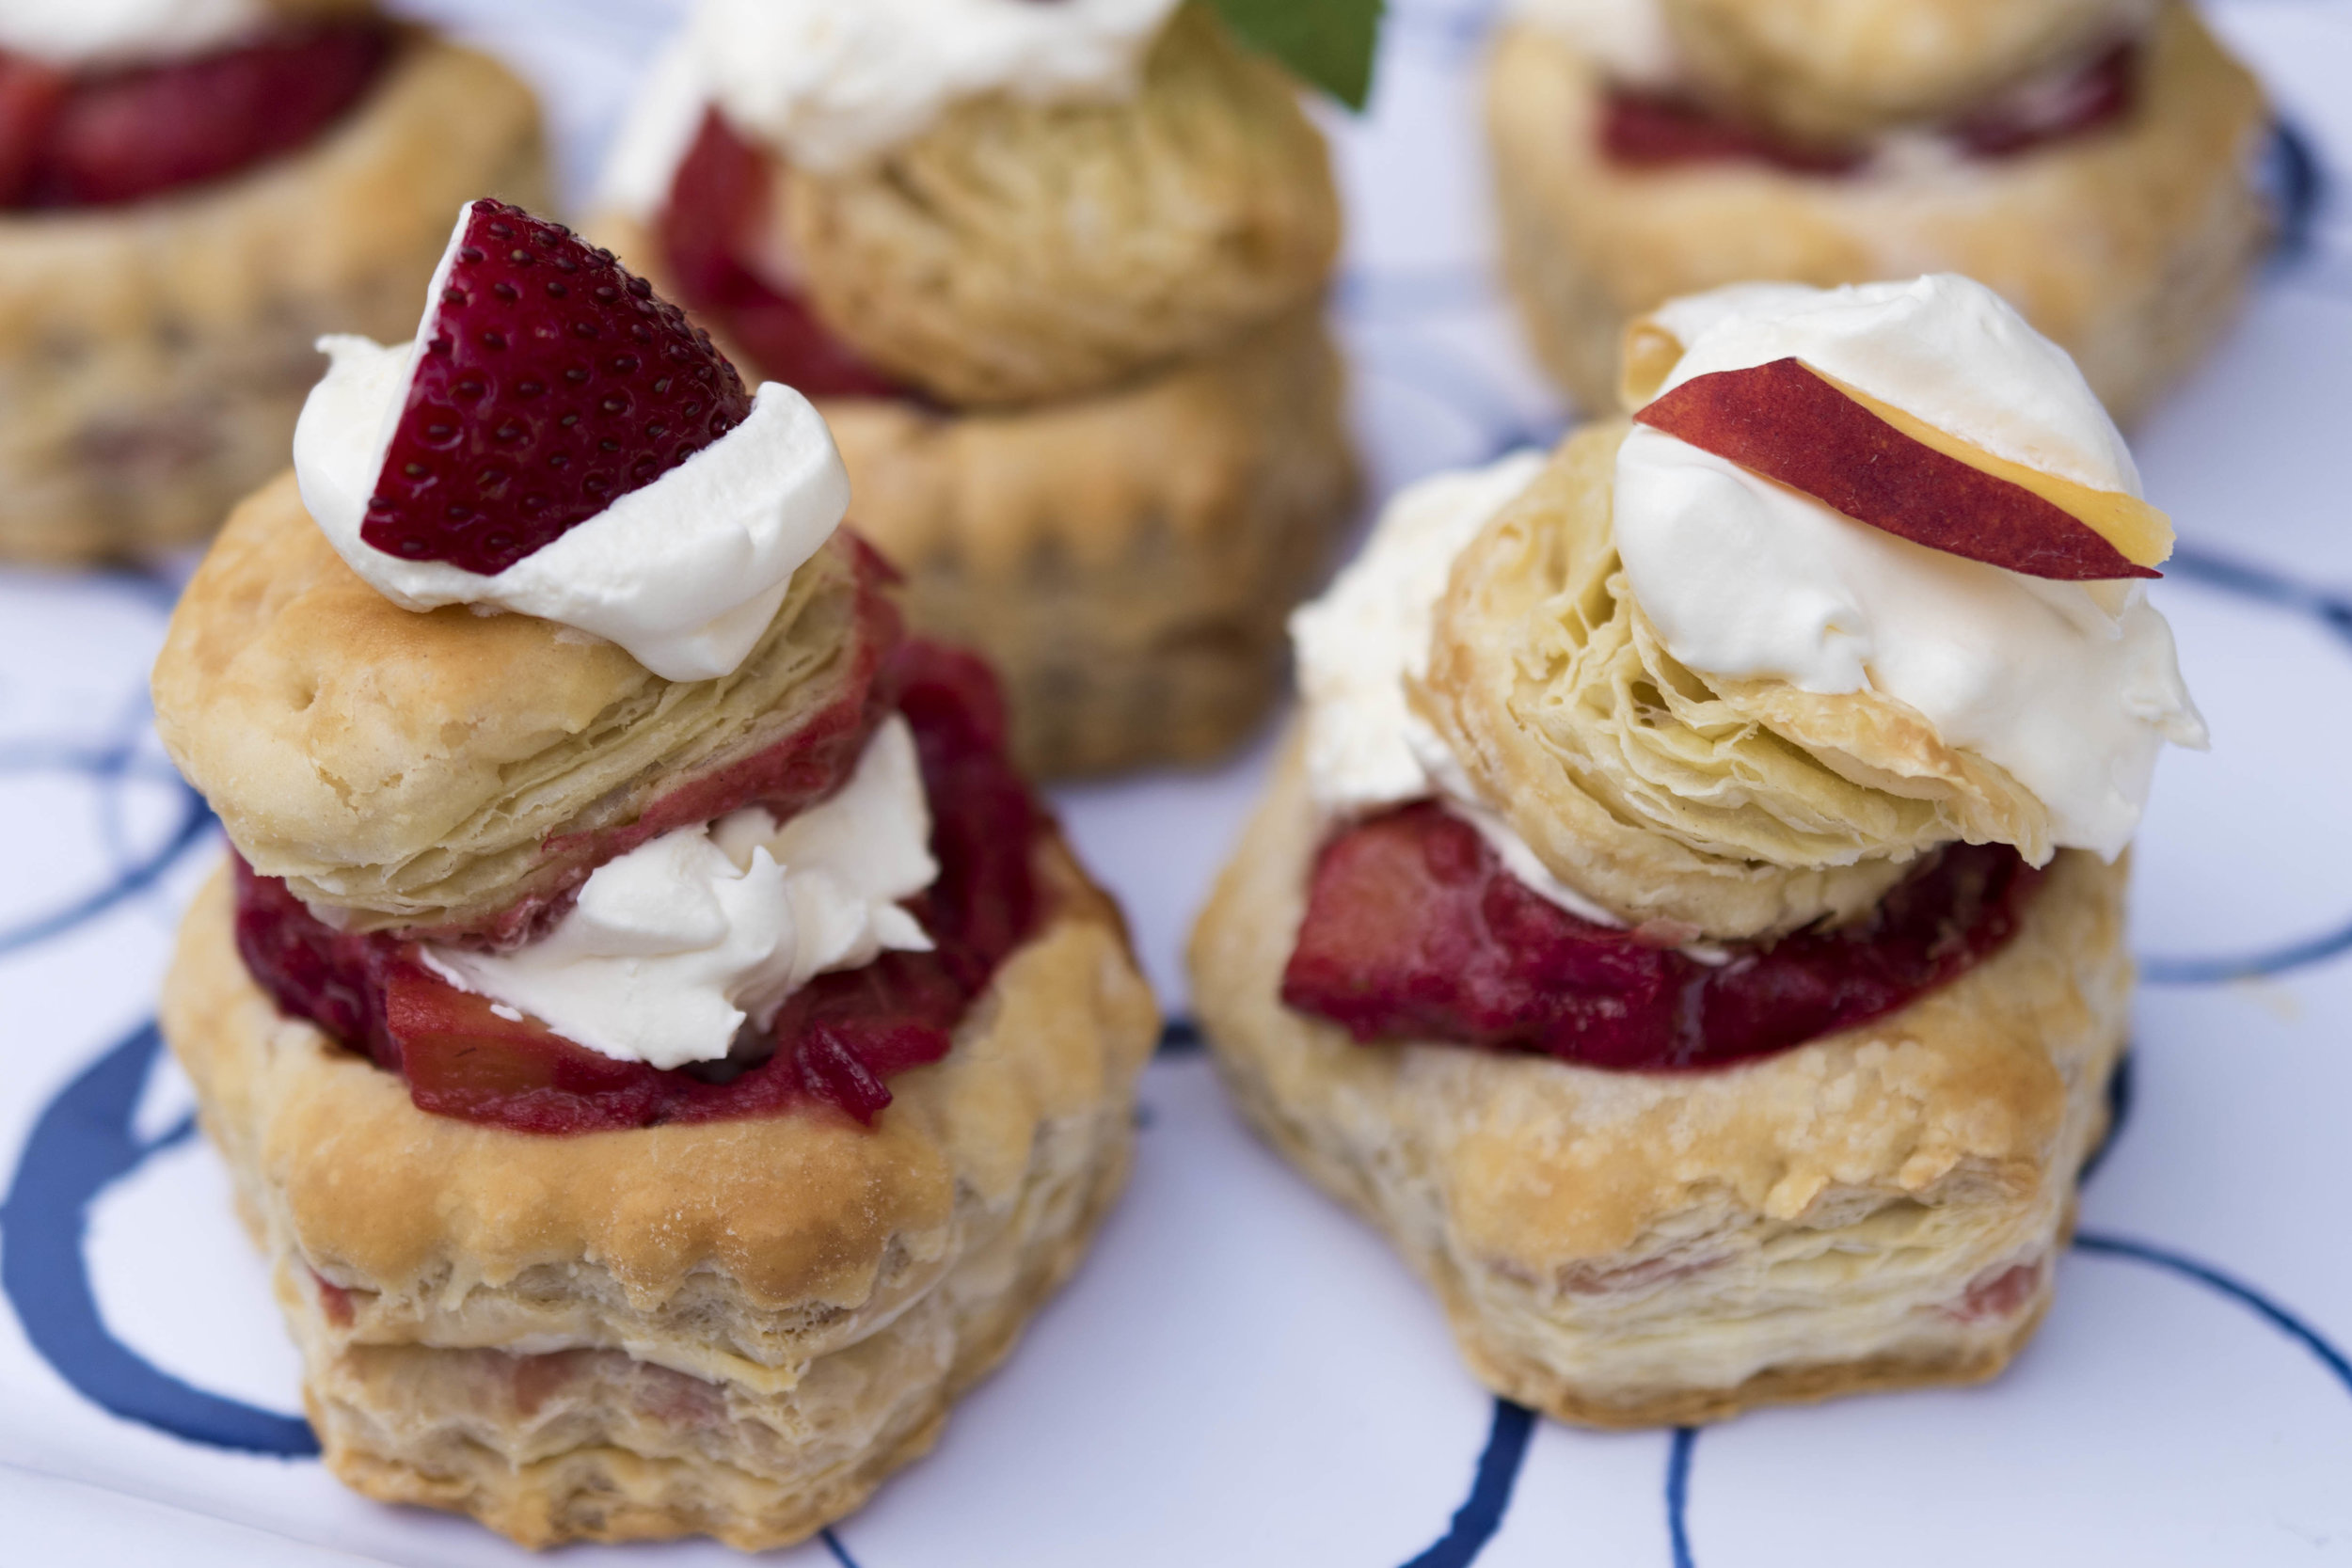 strawberry-peach-rhubarb-tarts©CopyrightCMP_2019-4884.jpg